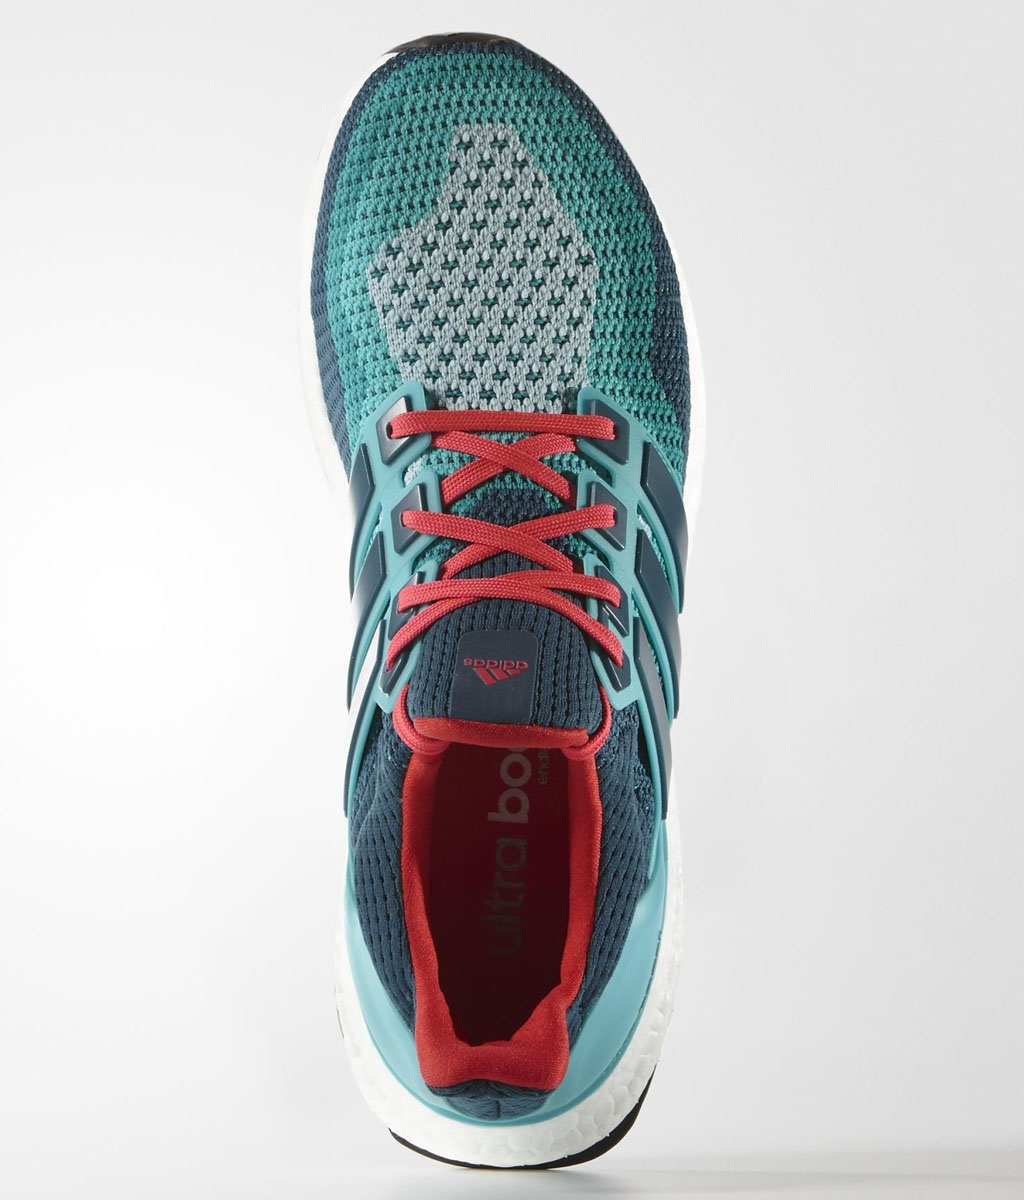 adidas Ultra Boost 2016 Wave Blue/Teal-Red (2)